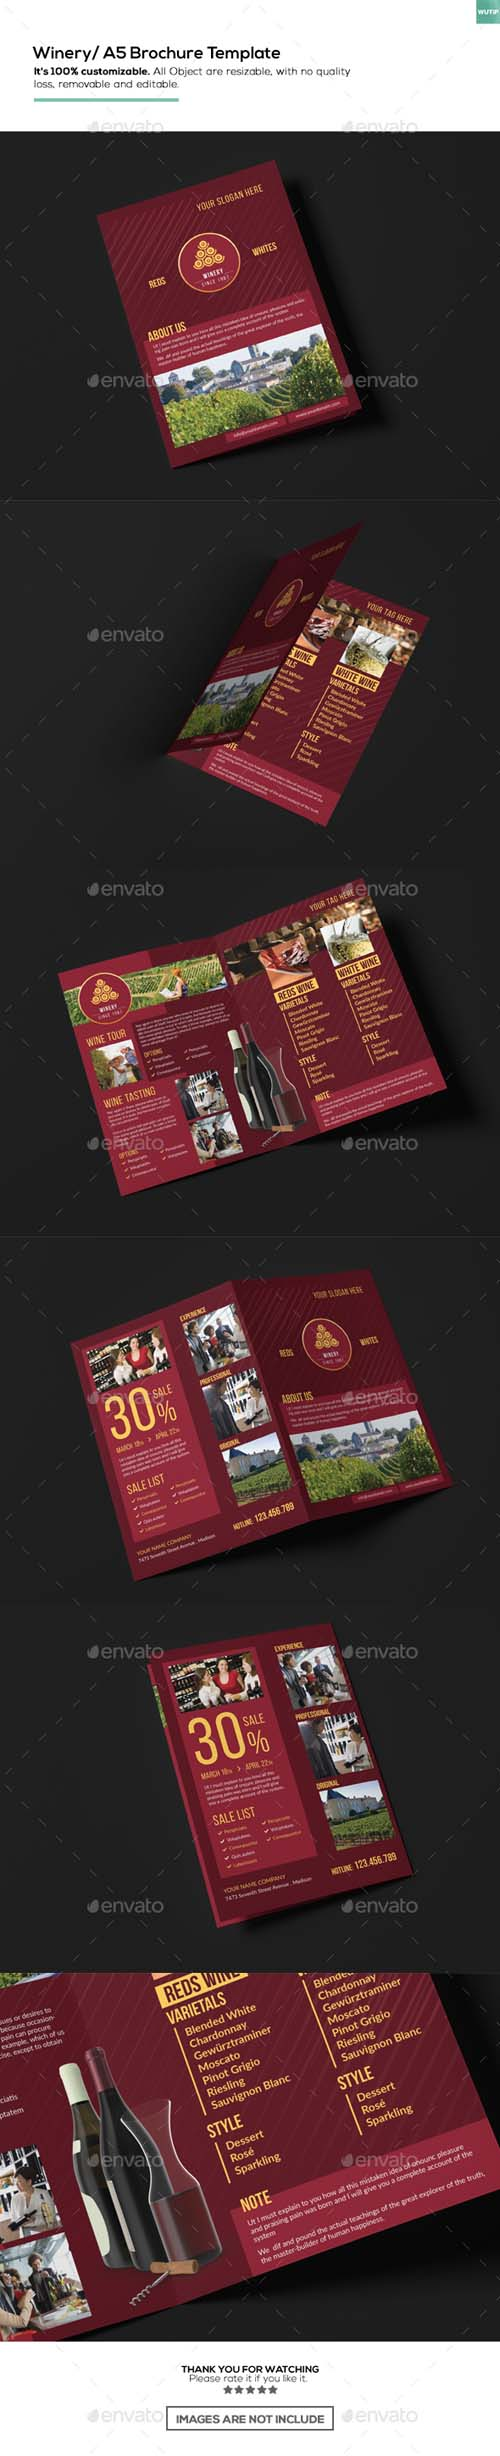 Winery/ A5 Brochure Template 15911030